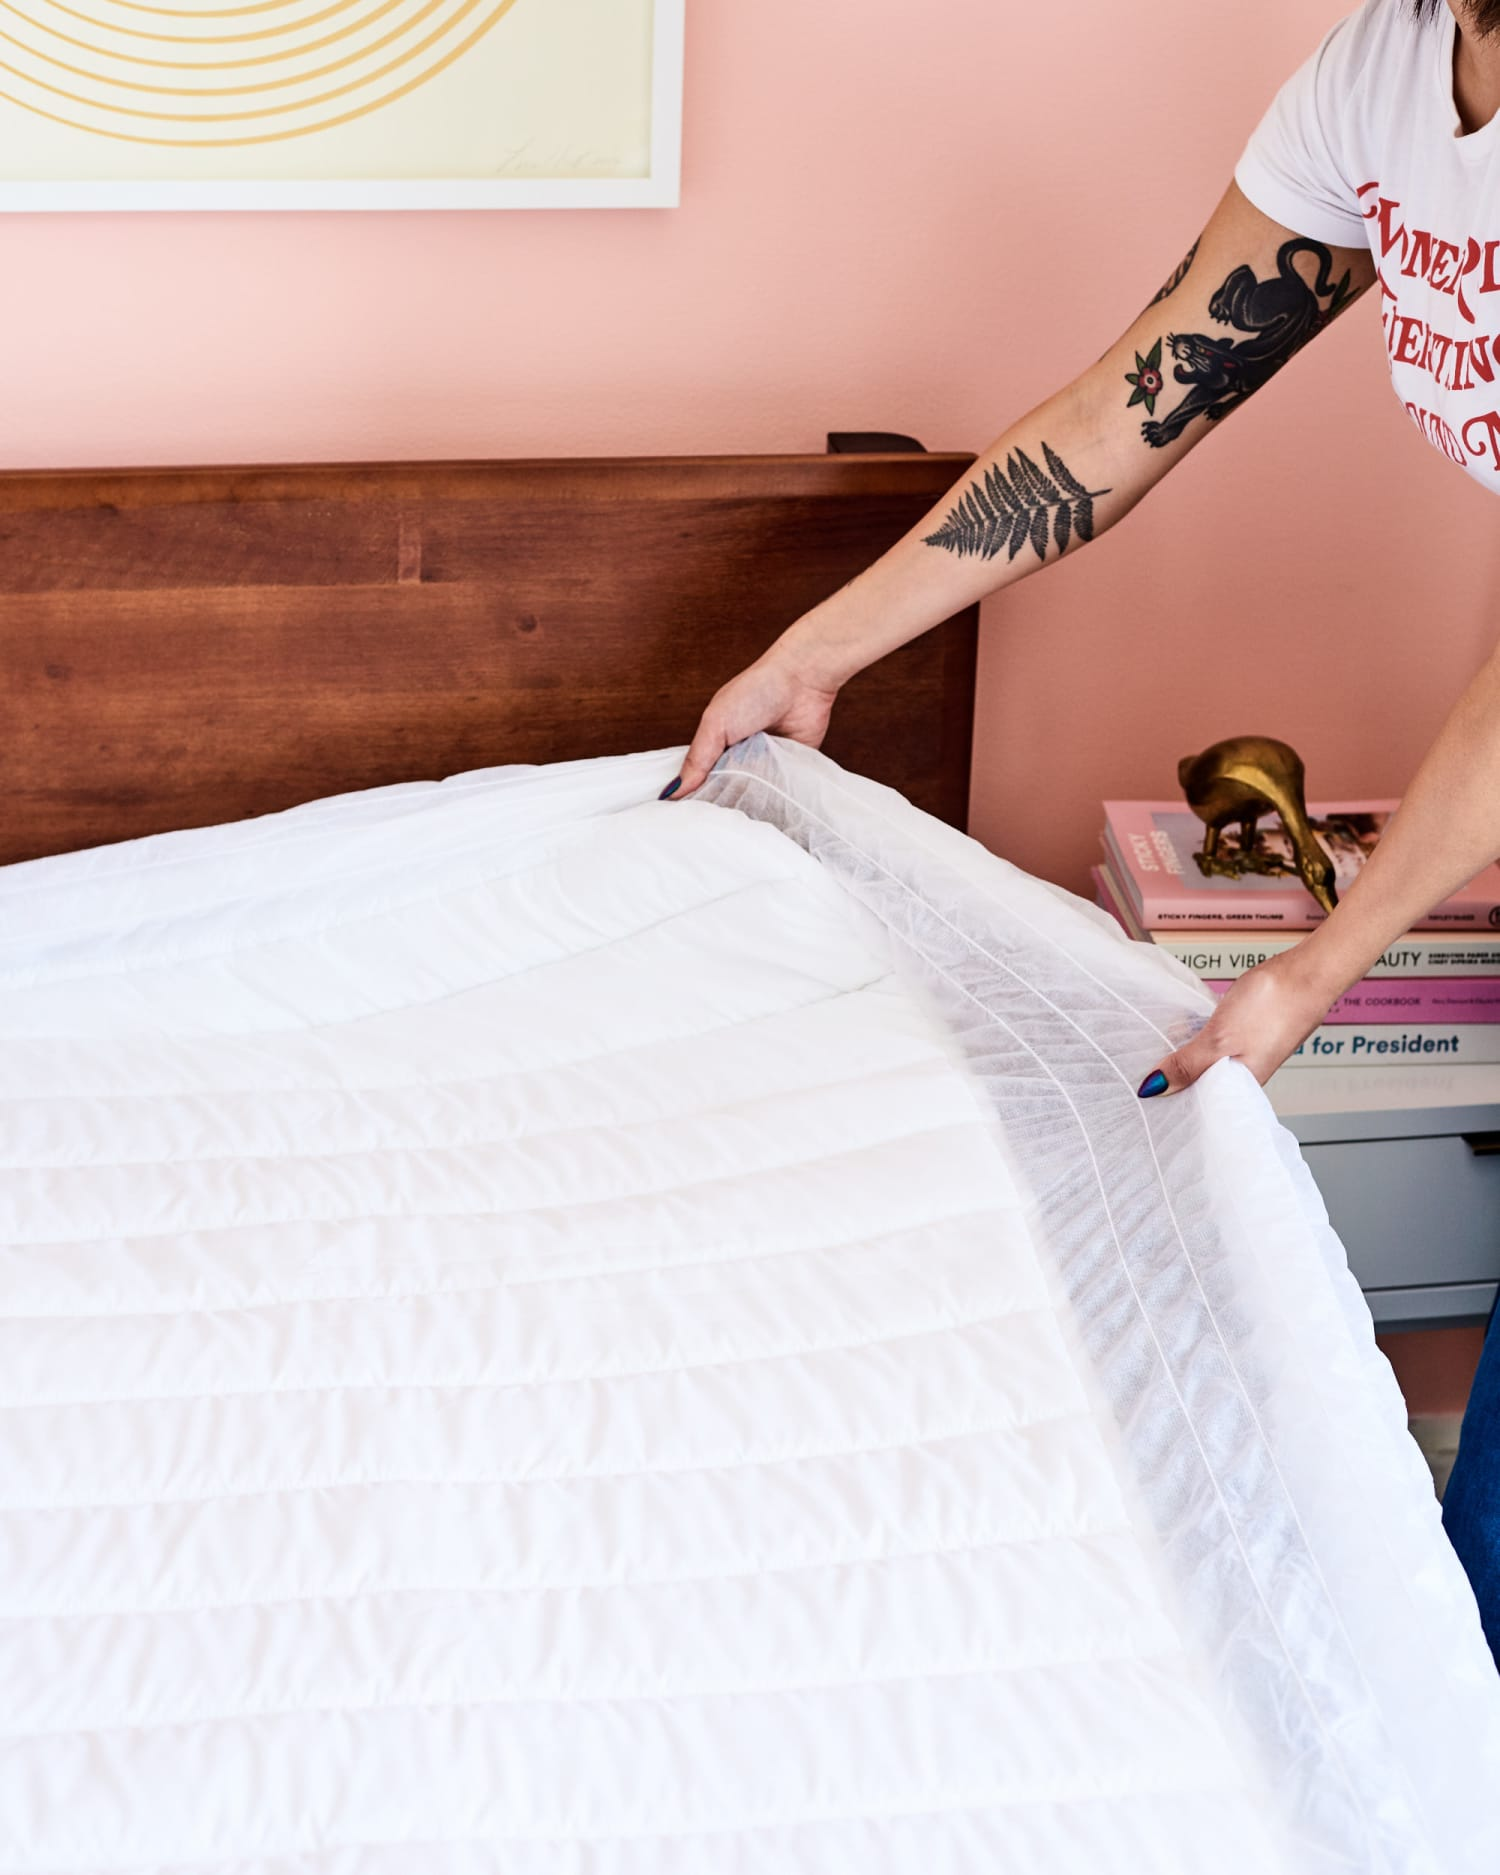 The Easiest Way to Sanitize Your Bed Sheets, According to a Laundry Expert